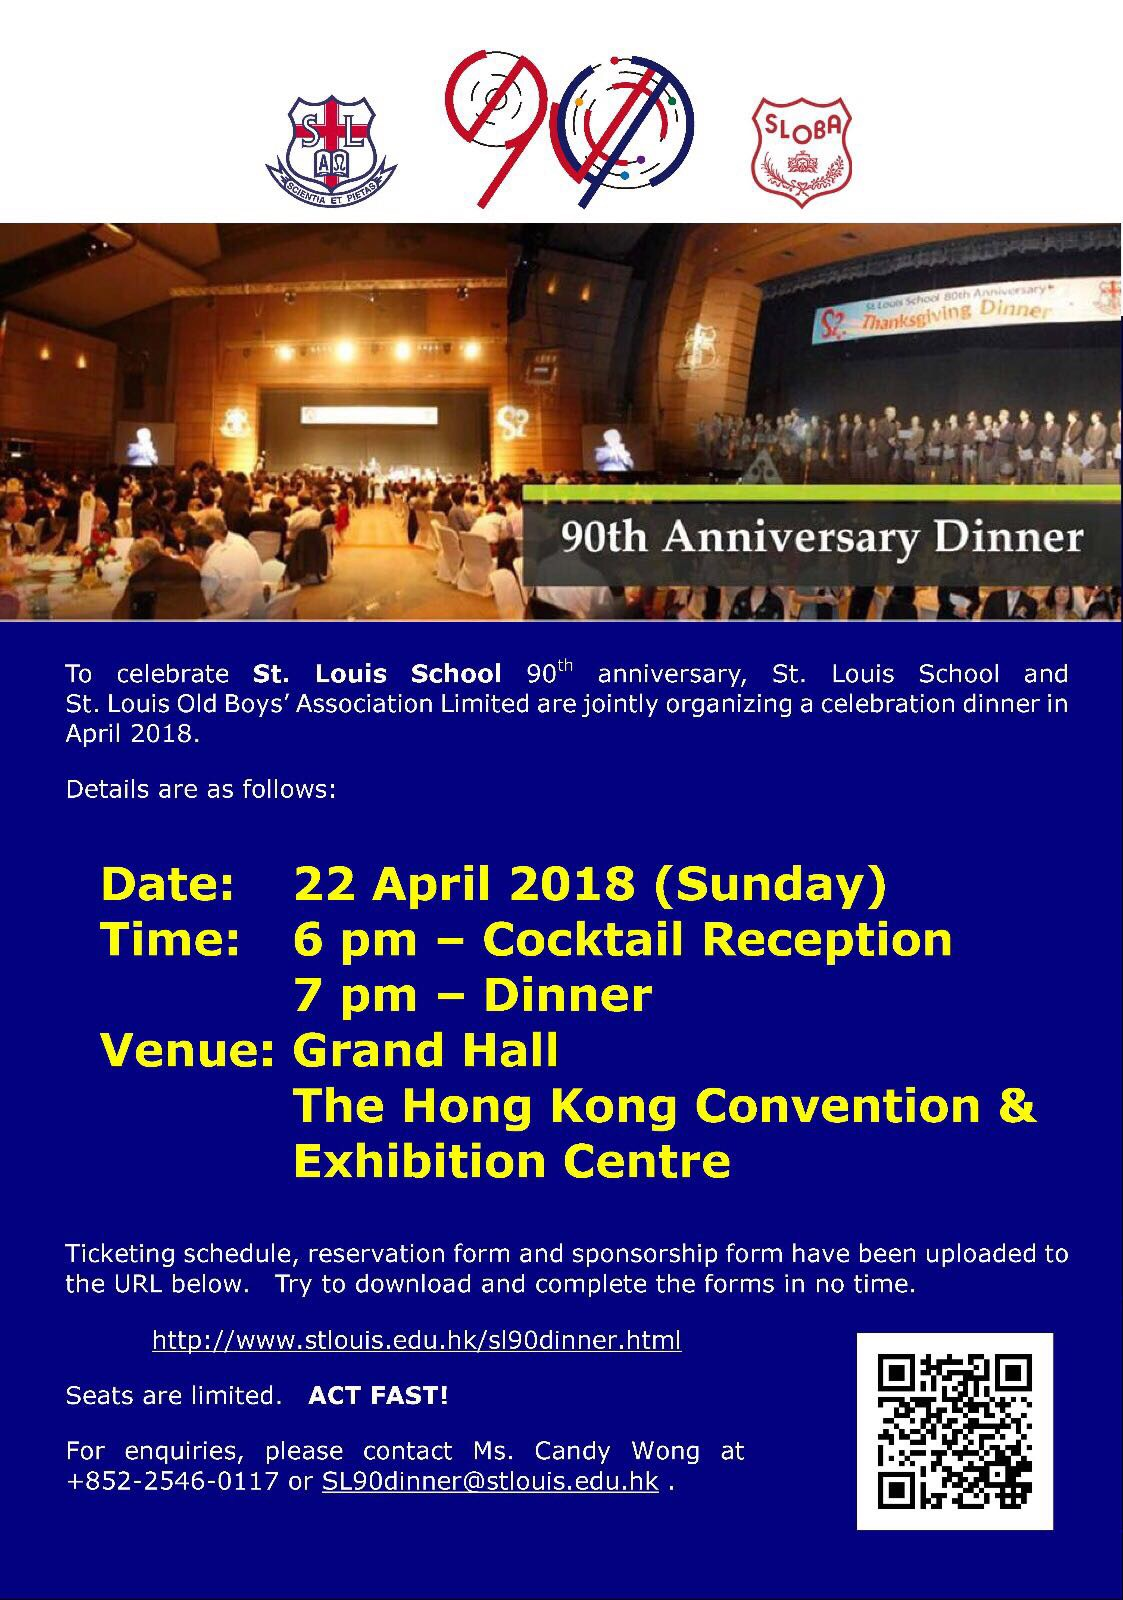 St louis old boys association sloba st louis school 90th invitation letter 2 ticketing schedule 3 reservation form for alumni only 4 sponsorship form stopboris Image collections